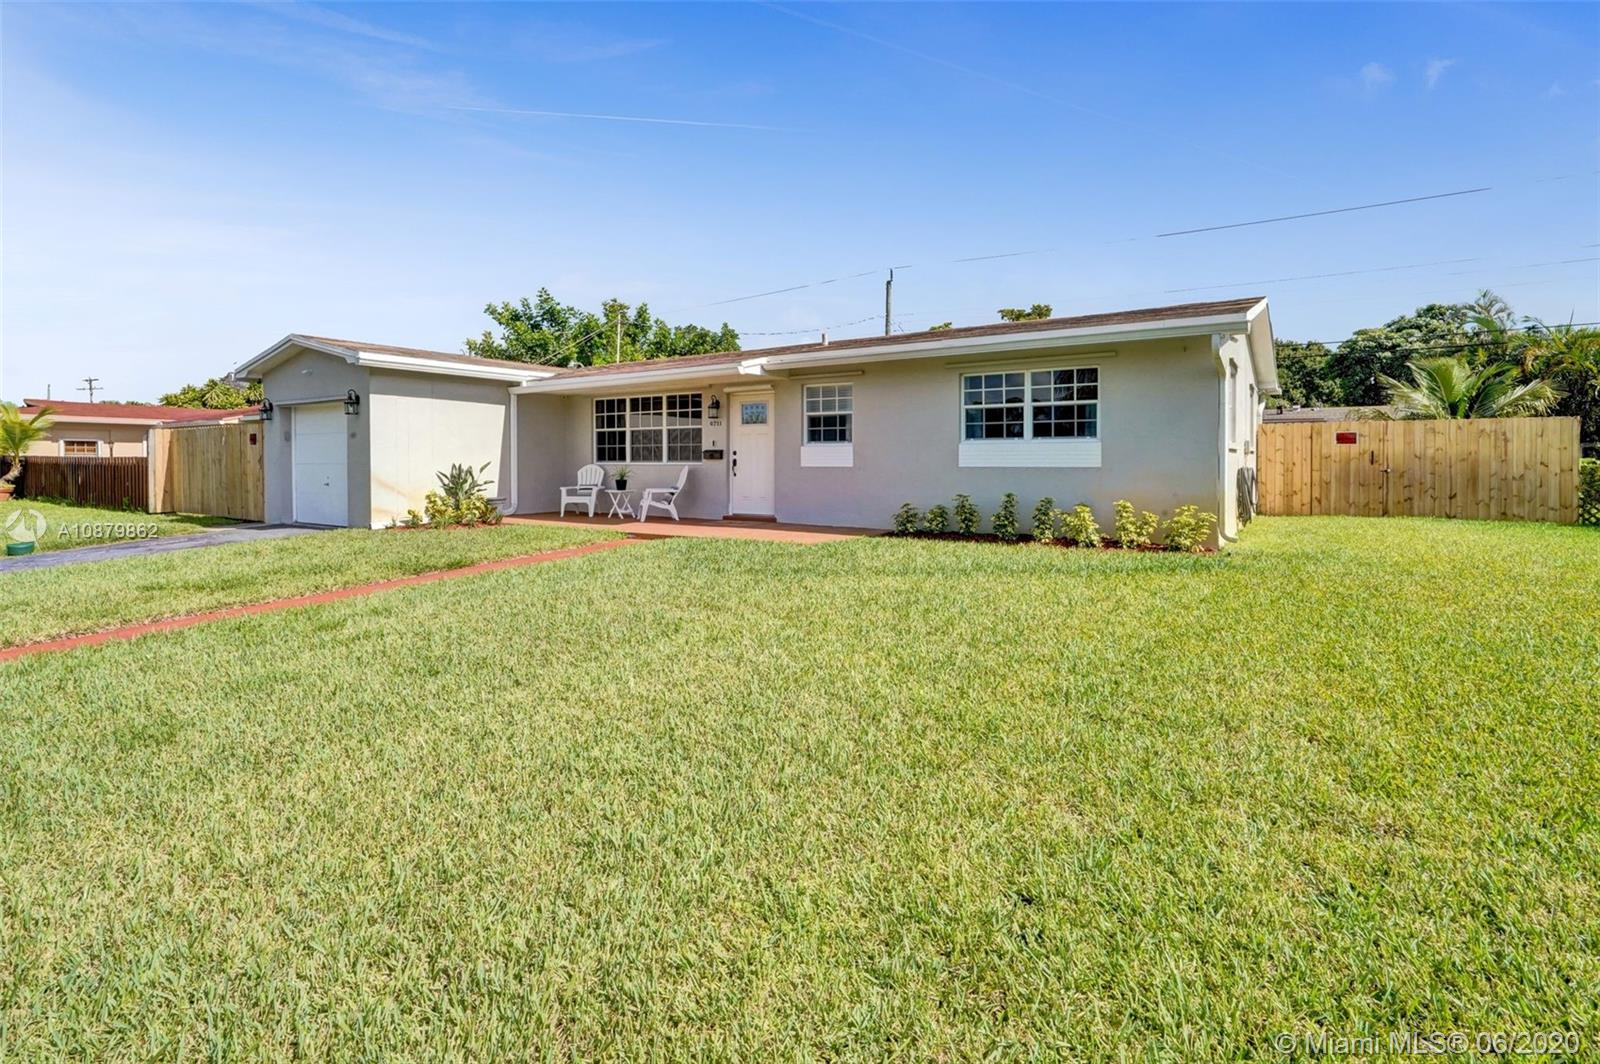 Interior has been completely remodeled less than 2 years ago. New kitchen, new floor, completely painted, new fence, remodeled bathrooms, hurricane protection, and more! Just steps away from Pembroke Pines Elementary School. Must see home!